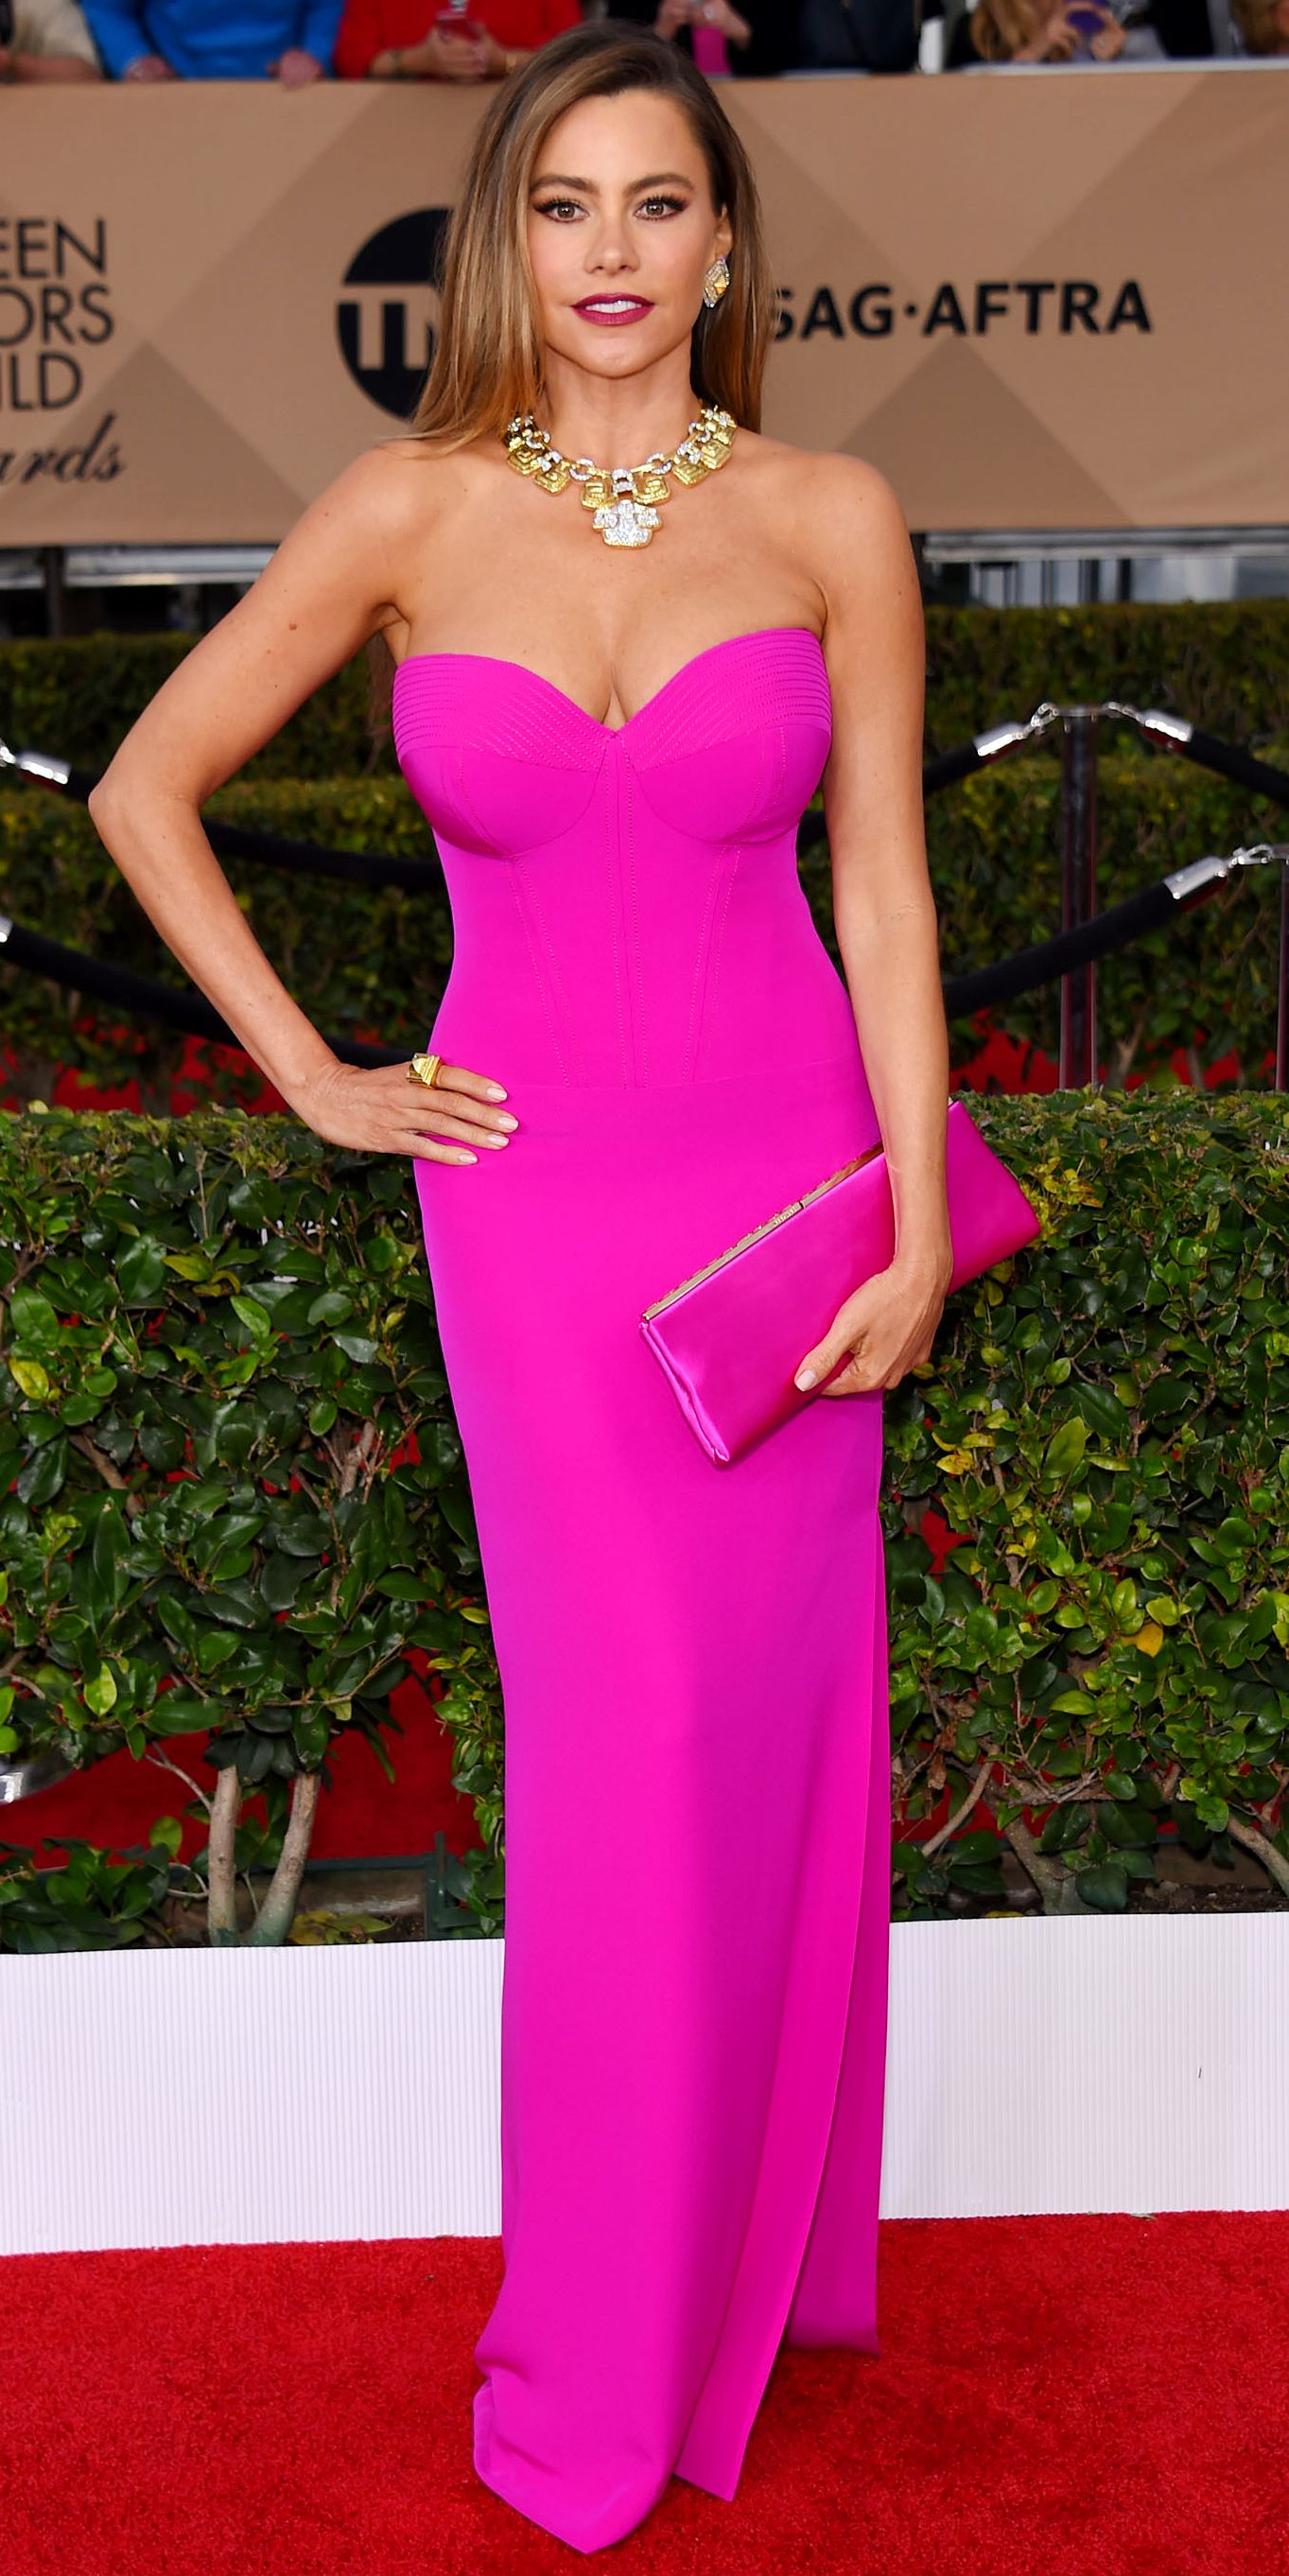 2016 SAG Awards Red Carpet Arrivals | Fucsia, Hermosa y Vestiditos